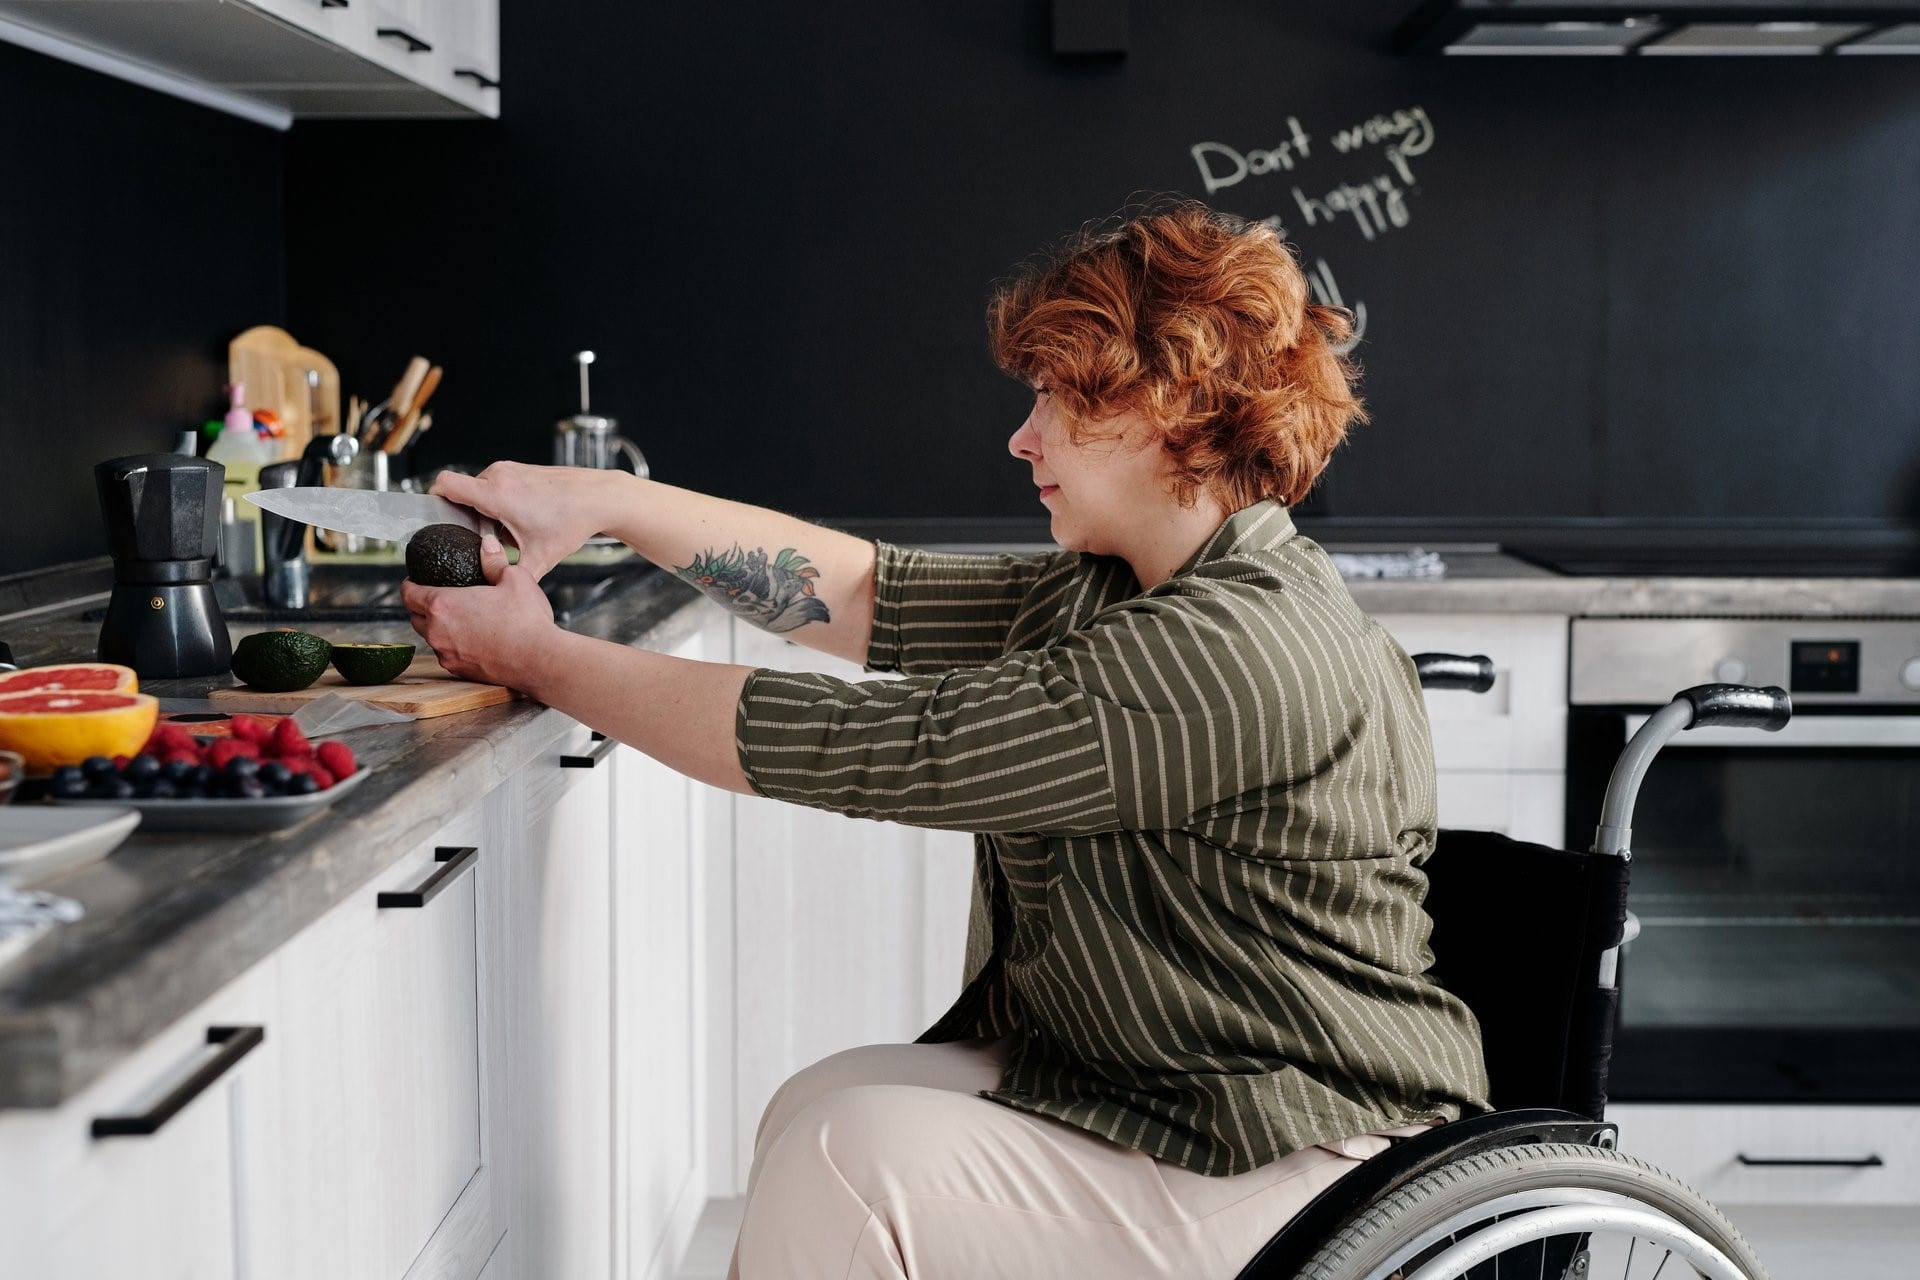 How to Buy an Accessible Home for Barrier-Free Living